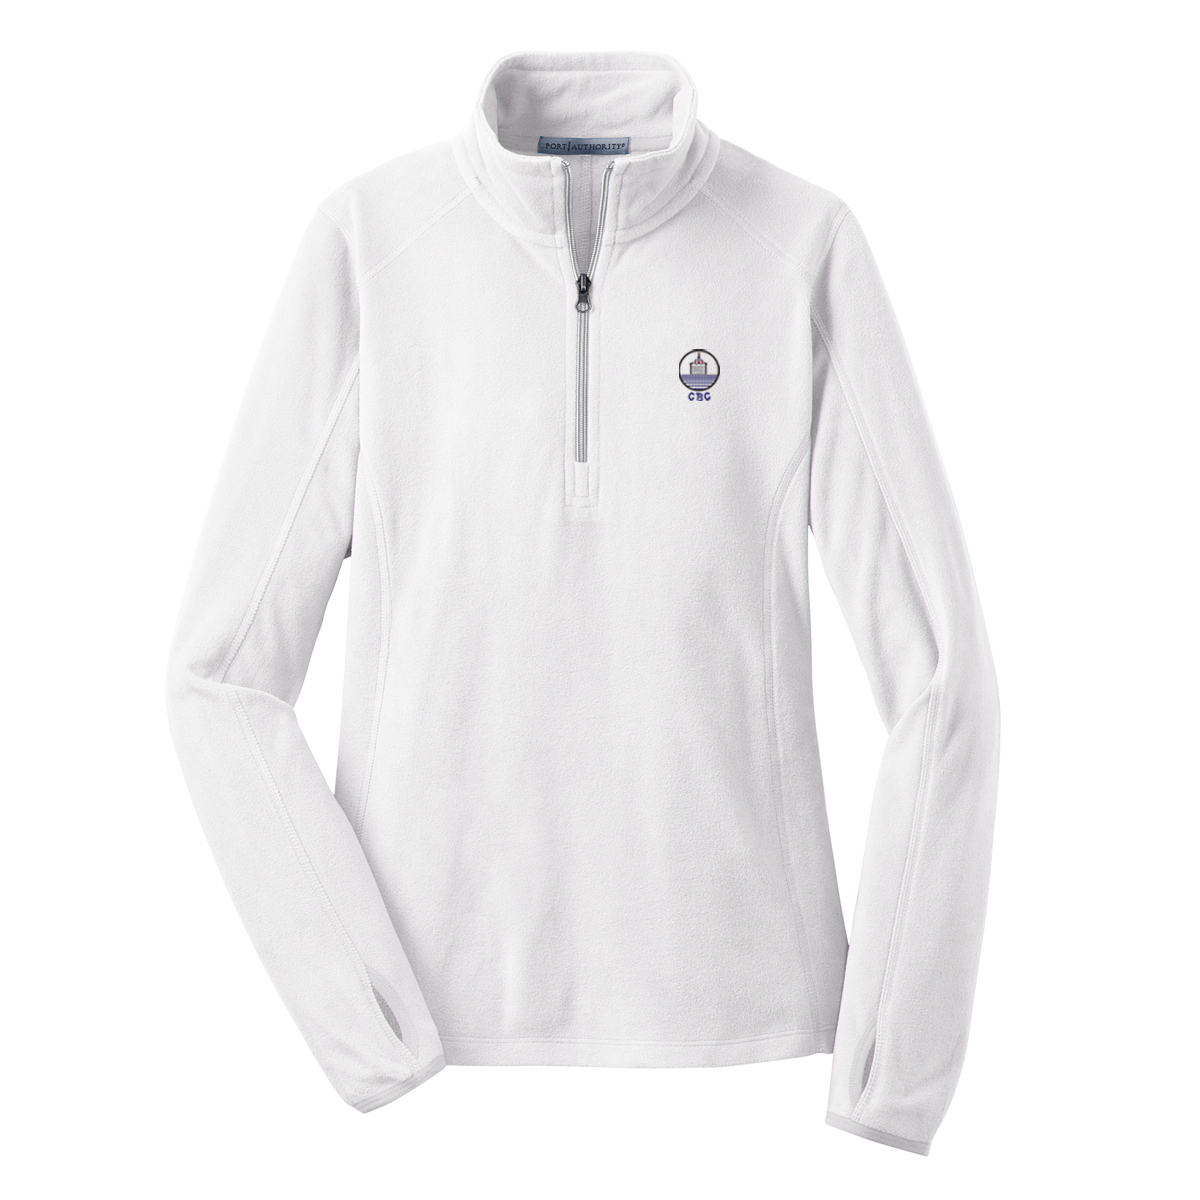 Chappaquiddick Beach Club - Women's Microfleece 1/4 Zip Pullover